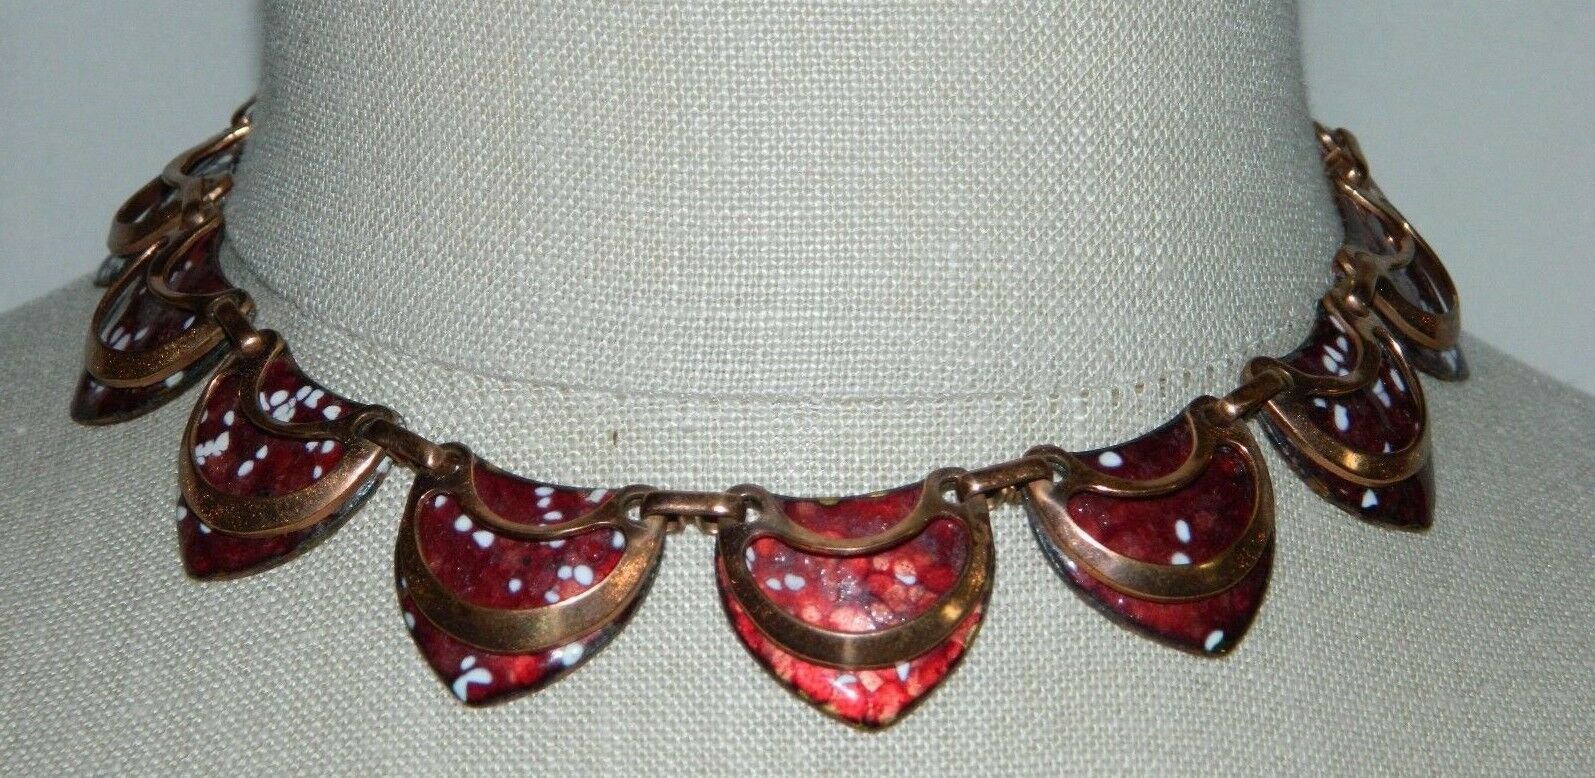 Primary image for VTG MATISSE Renoir SHIELD Copper Red Enamel Necklace